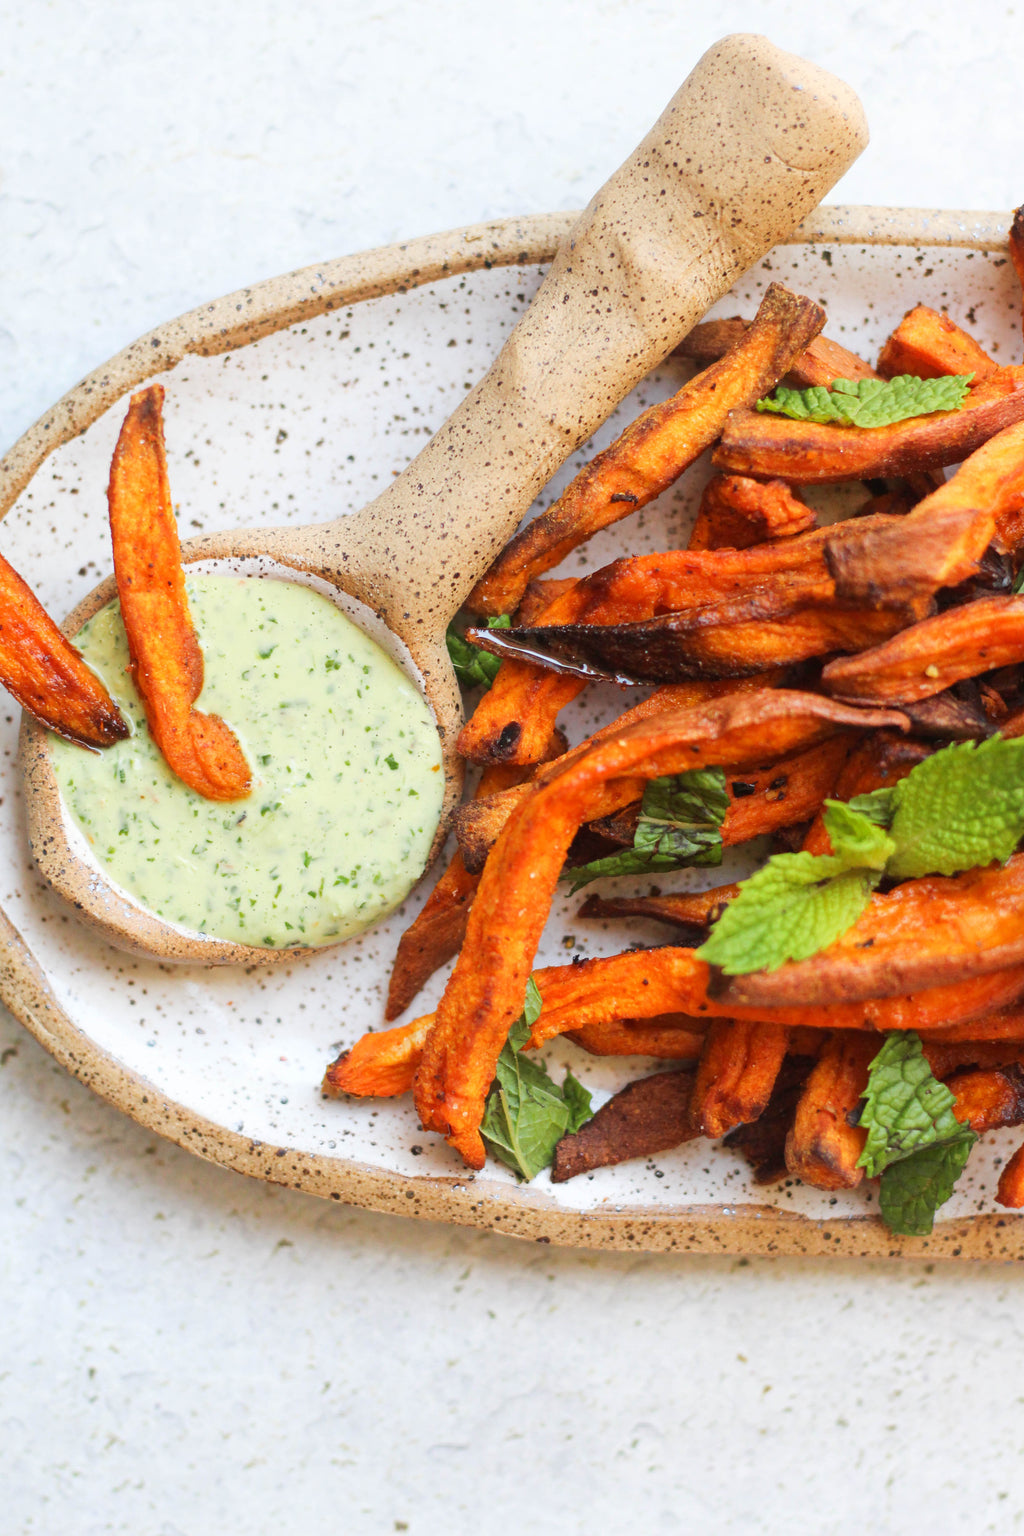 Whole 30 Sweet Potato Fries with Homemade Mayo & Spicy Arugula Dipping Sauce